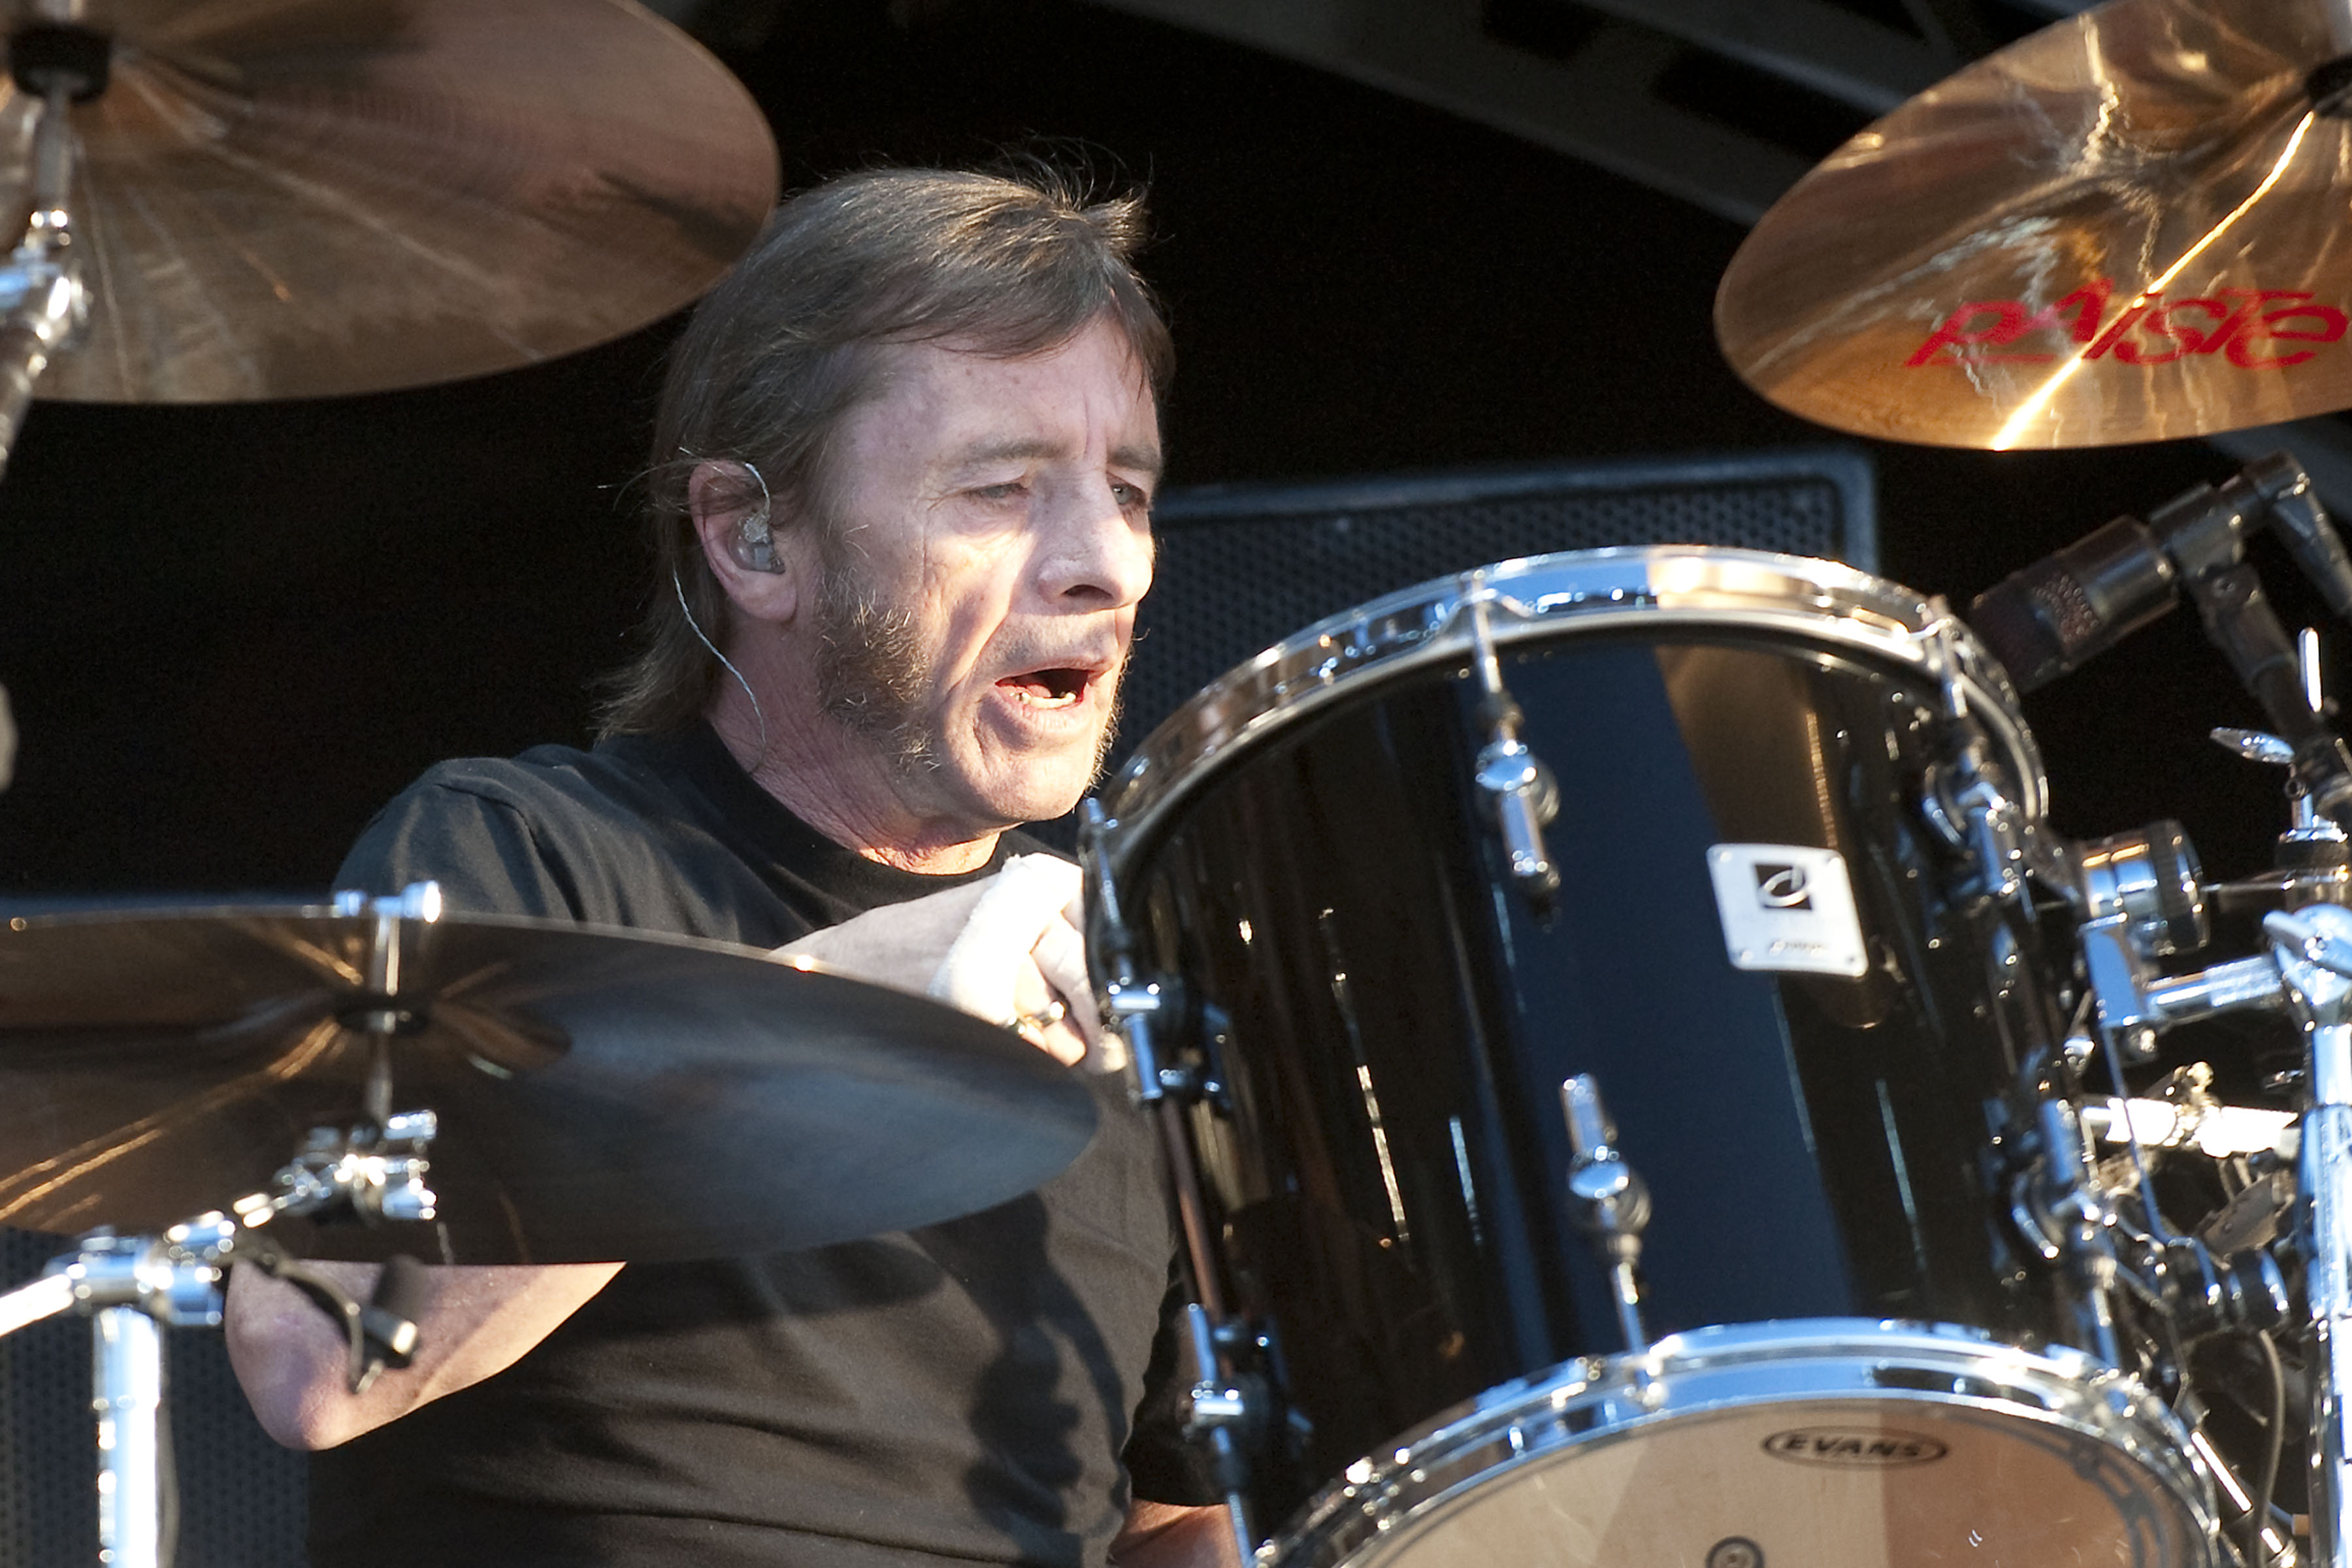 DERBY, UNITED KINGDOM - JUNE 11: Phil Rudd of AC/DC performs on stage on the first day of the Download Festival at Donington